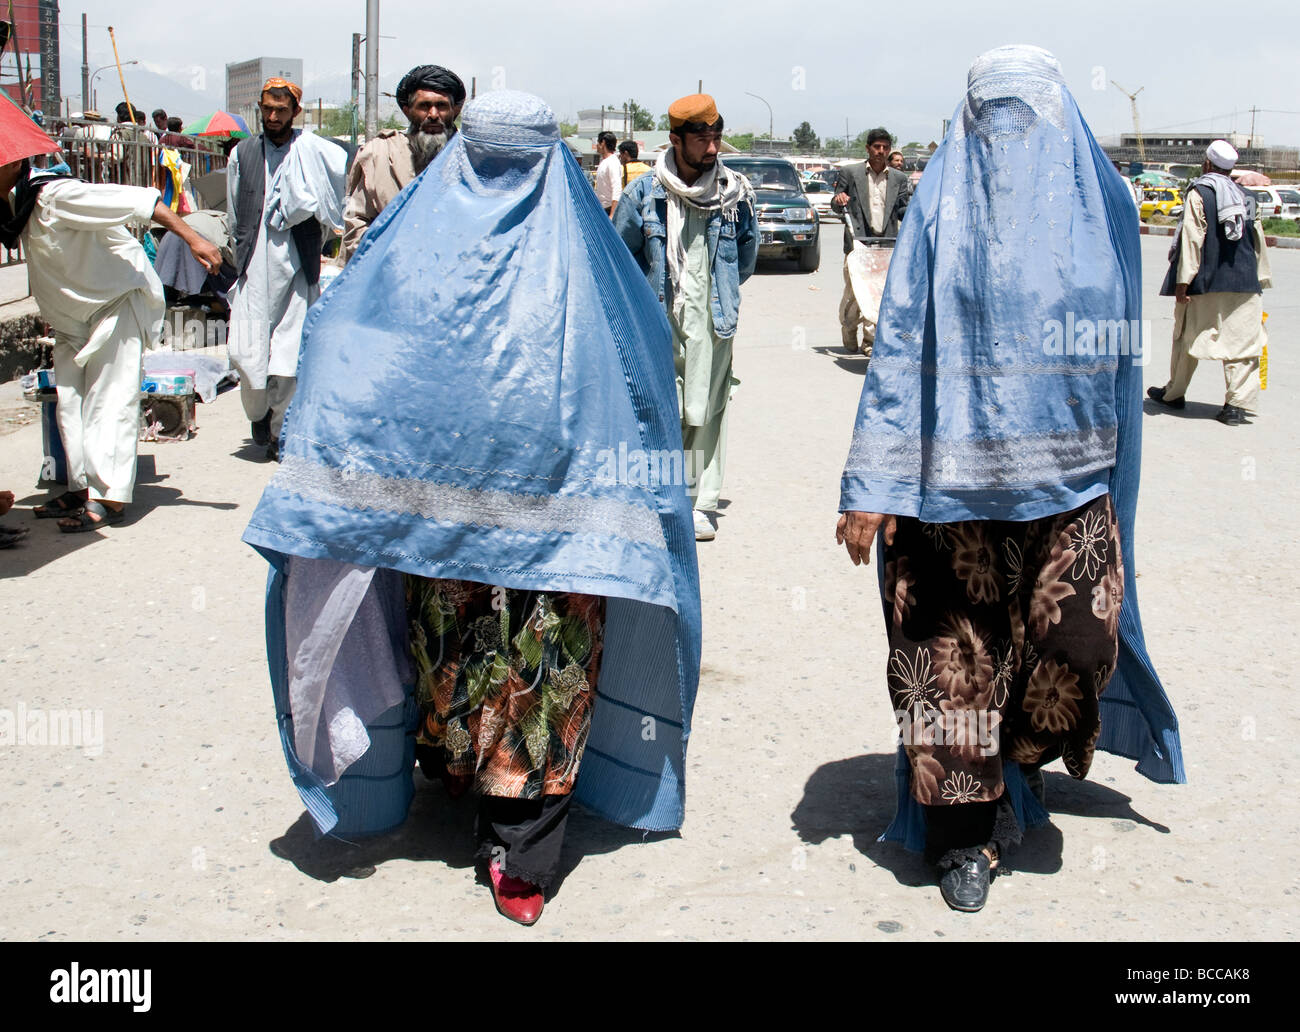 Two women in a Kabul street wear the customary blue burqas that hide their faces but partly reveal modest dress - Stock Image